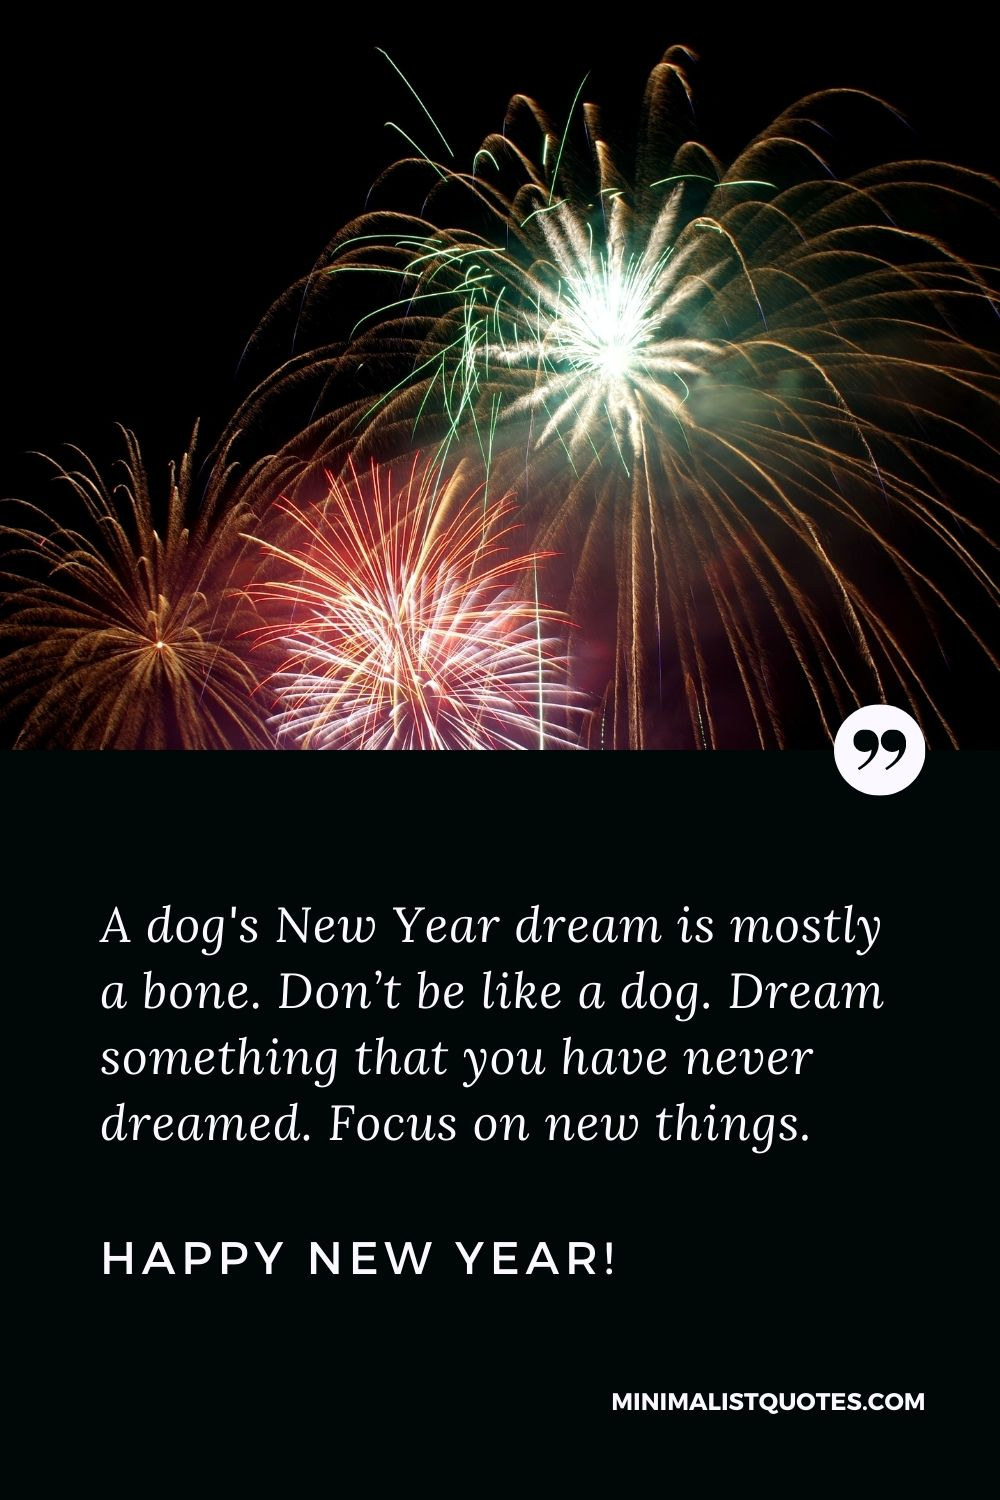 Happy New Year Quote: A dog's New Year dream is mostly a bone. Don't be like a dog. Dream something that you have never dreamed. Focus on new things. Happy New Year!